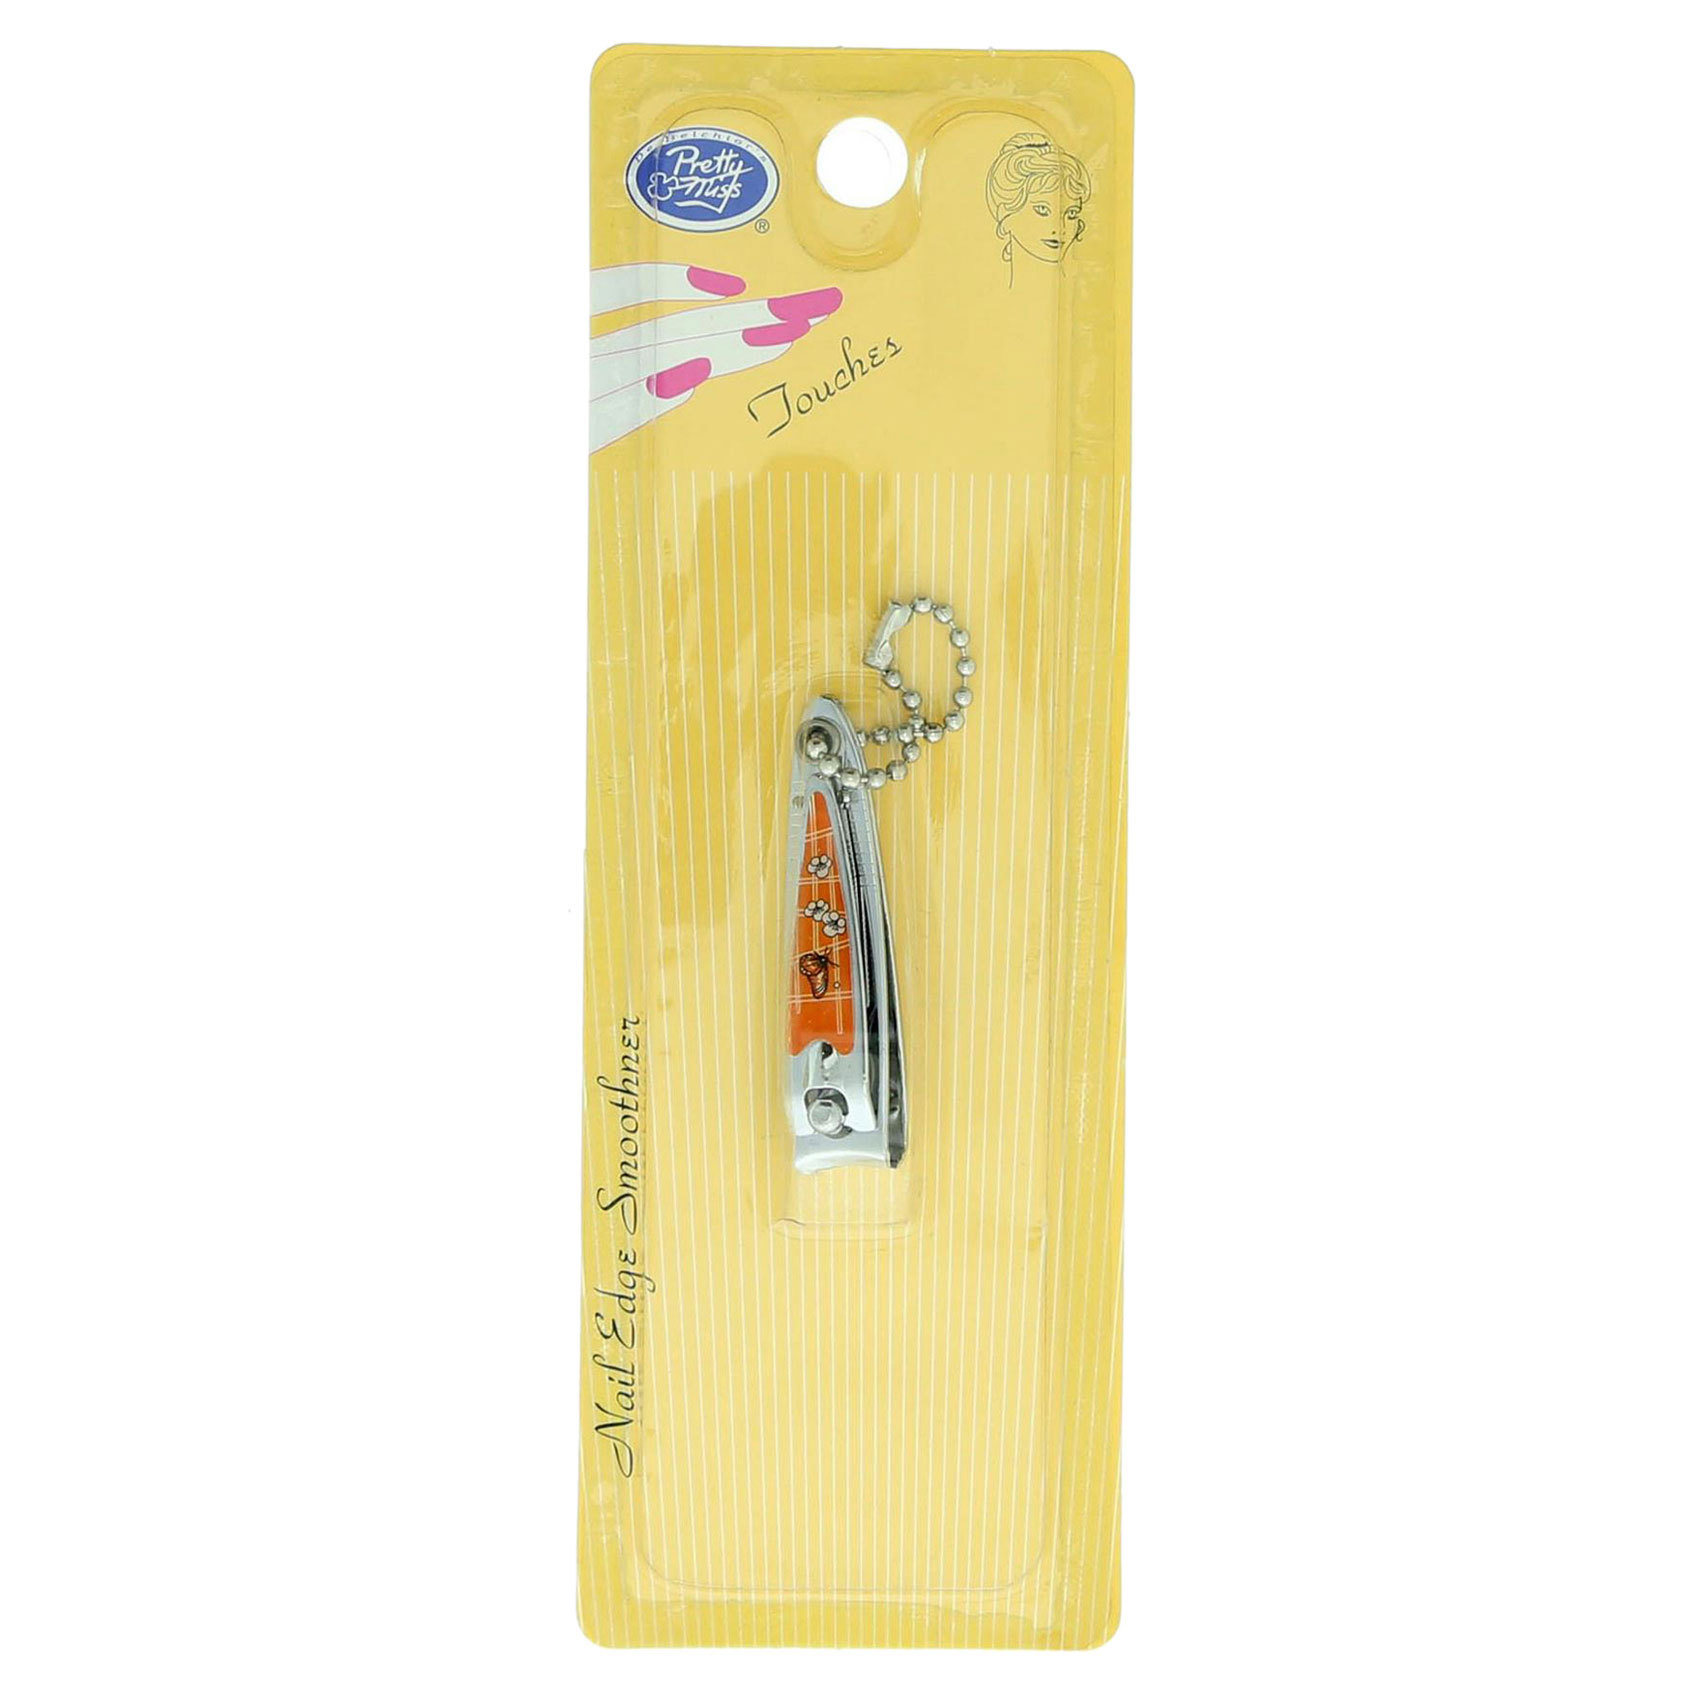 PRETTY MISS NAIL FILE 007